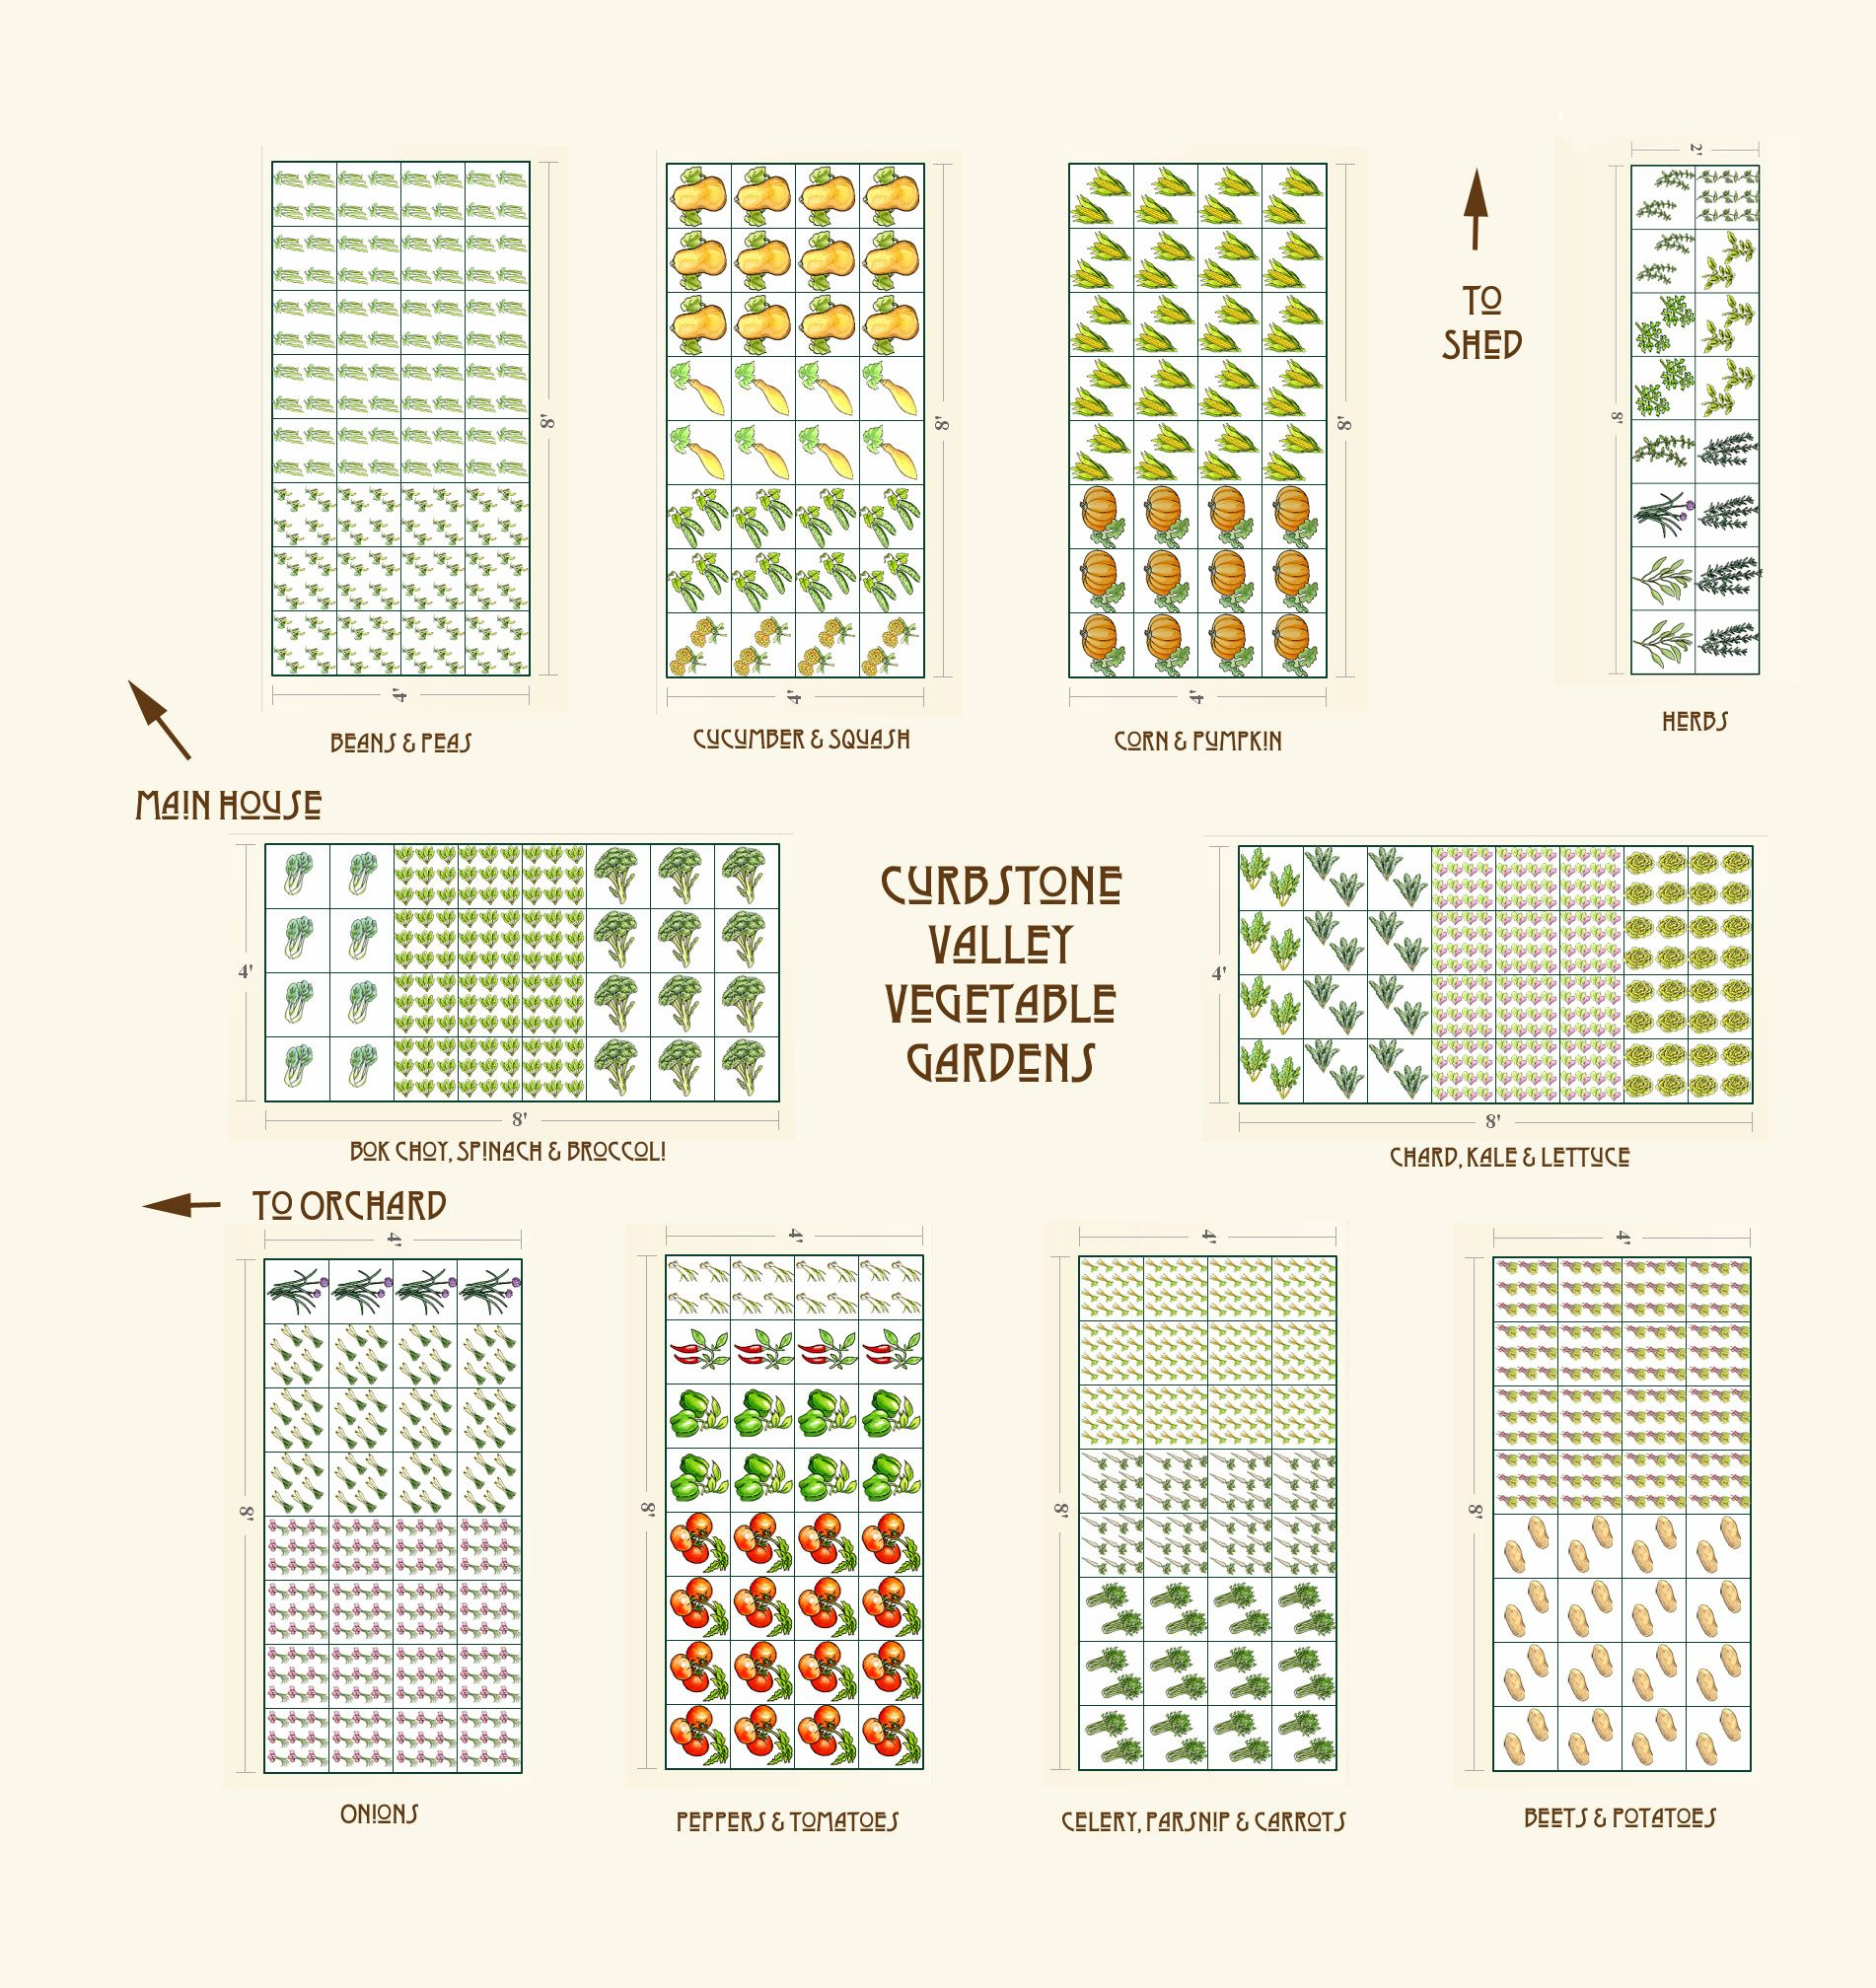 Table Garden Plans Layout Raised Vegetable Garden Bed Plans | Vegetable Garden Plan